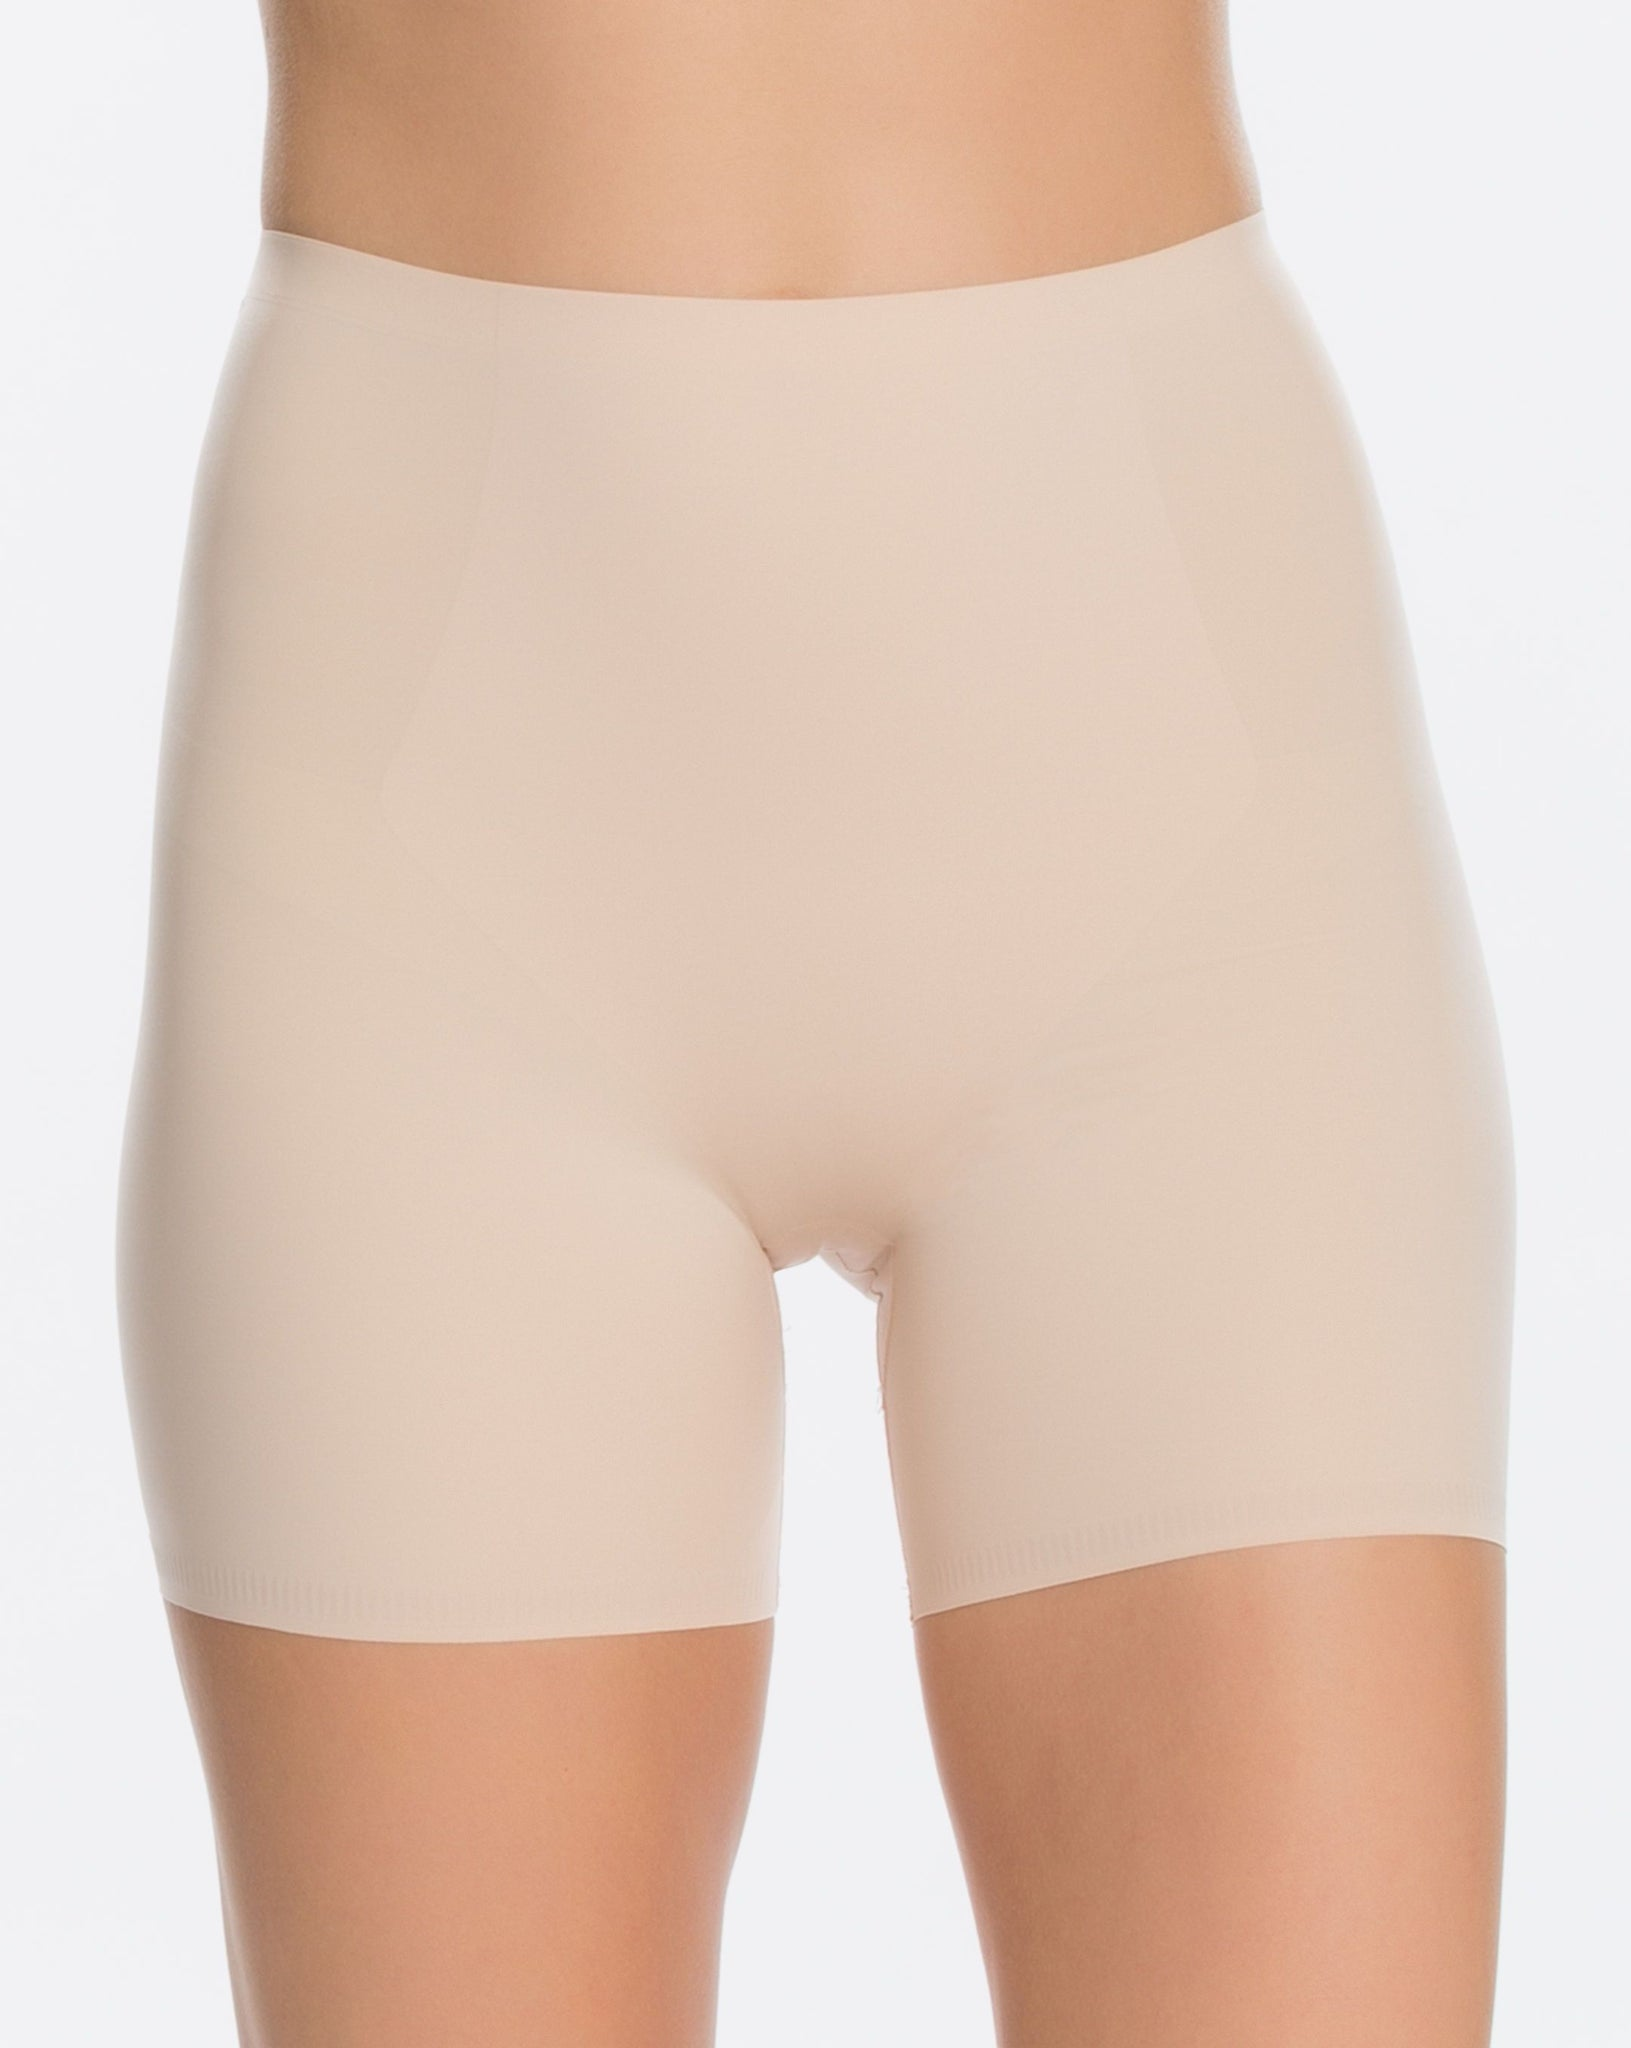 Spanx Thinstincts® Girl Short 10004R